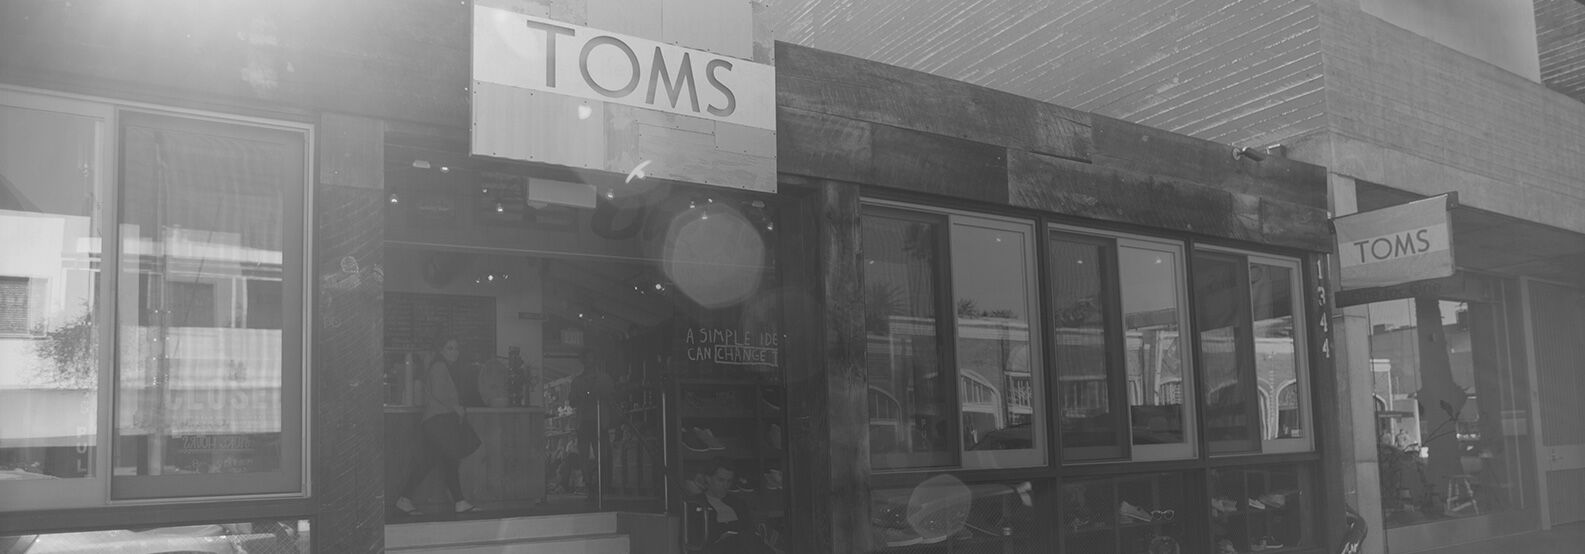 A black and white image of a TOMS storefront